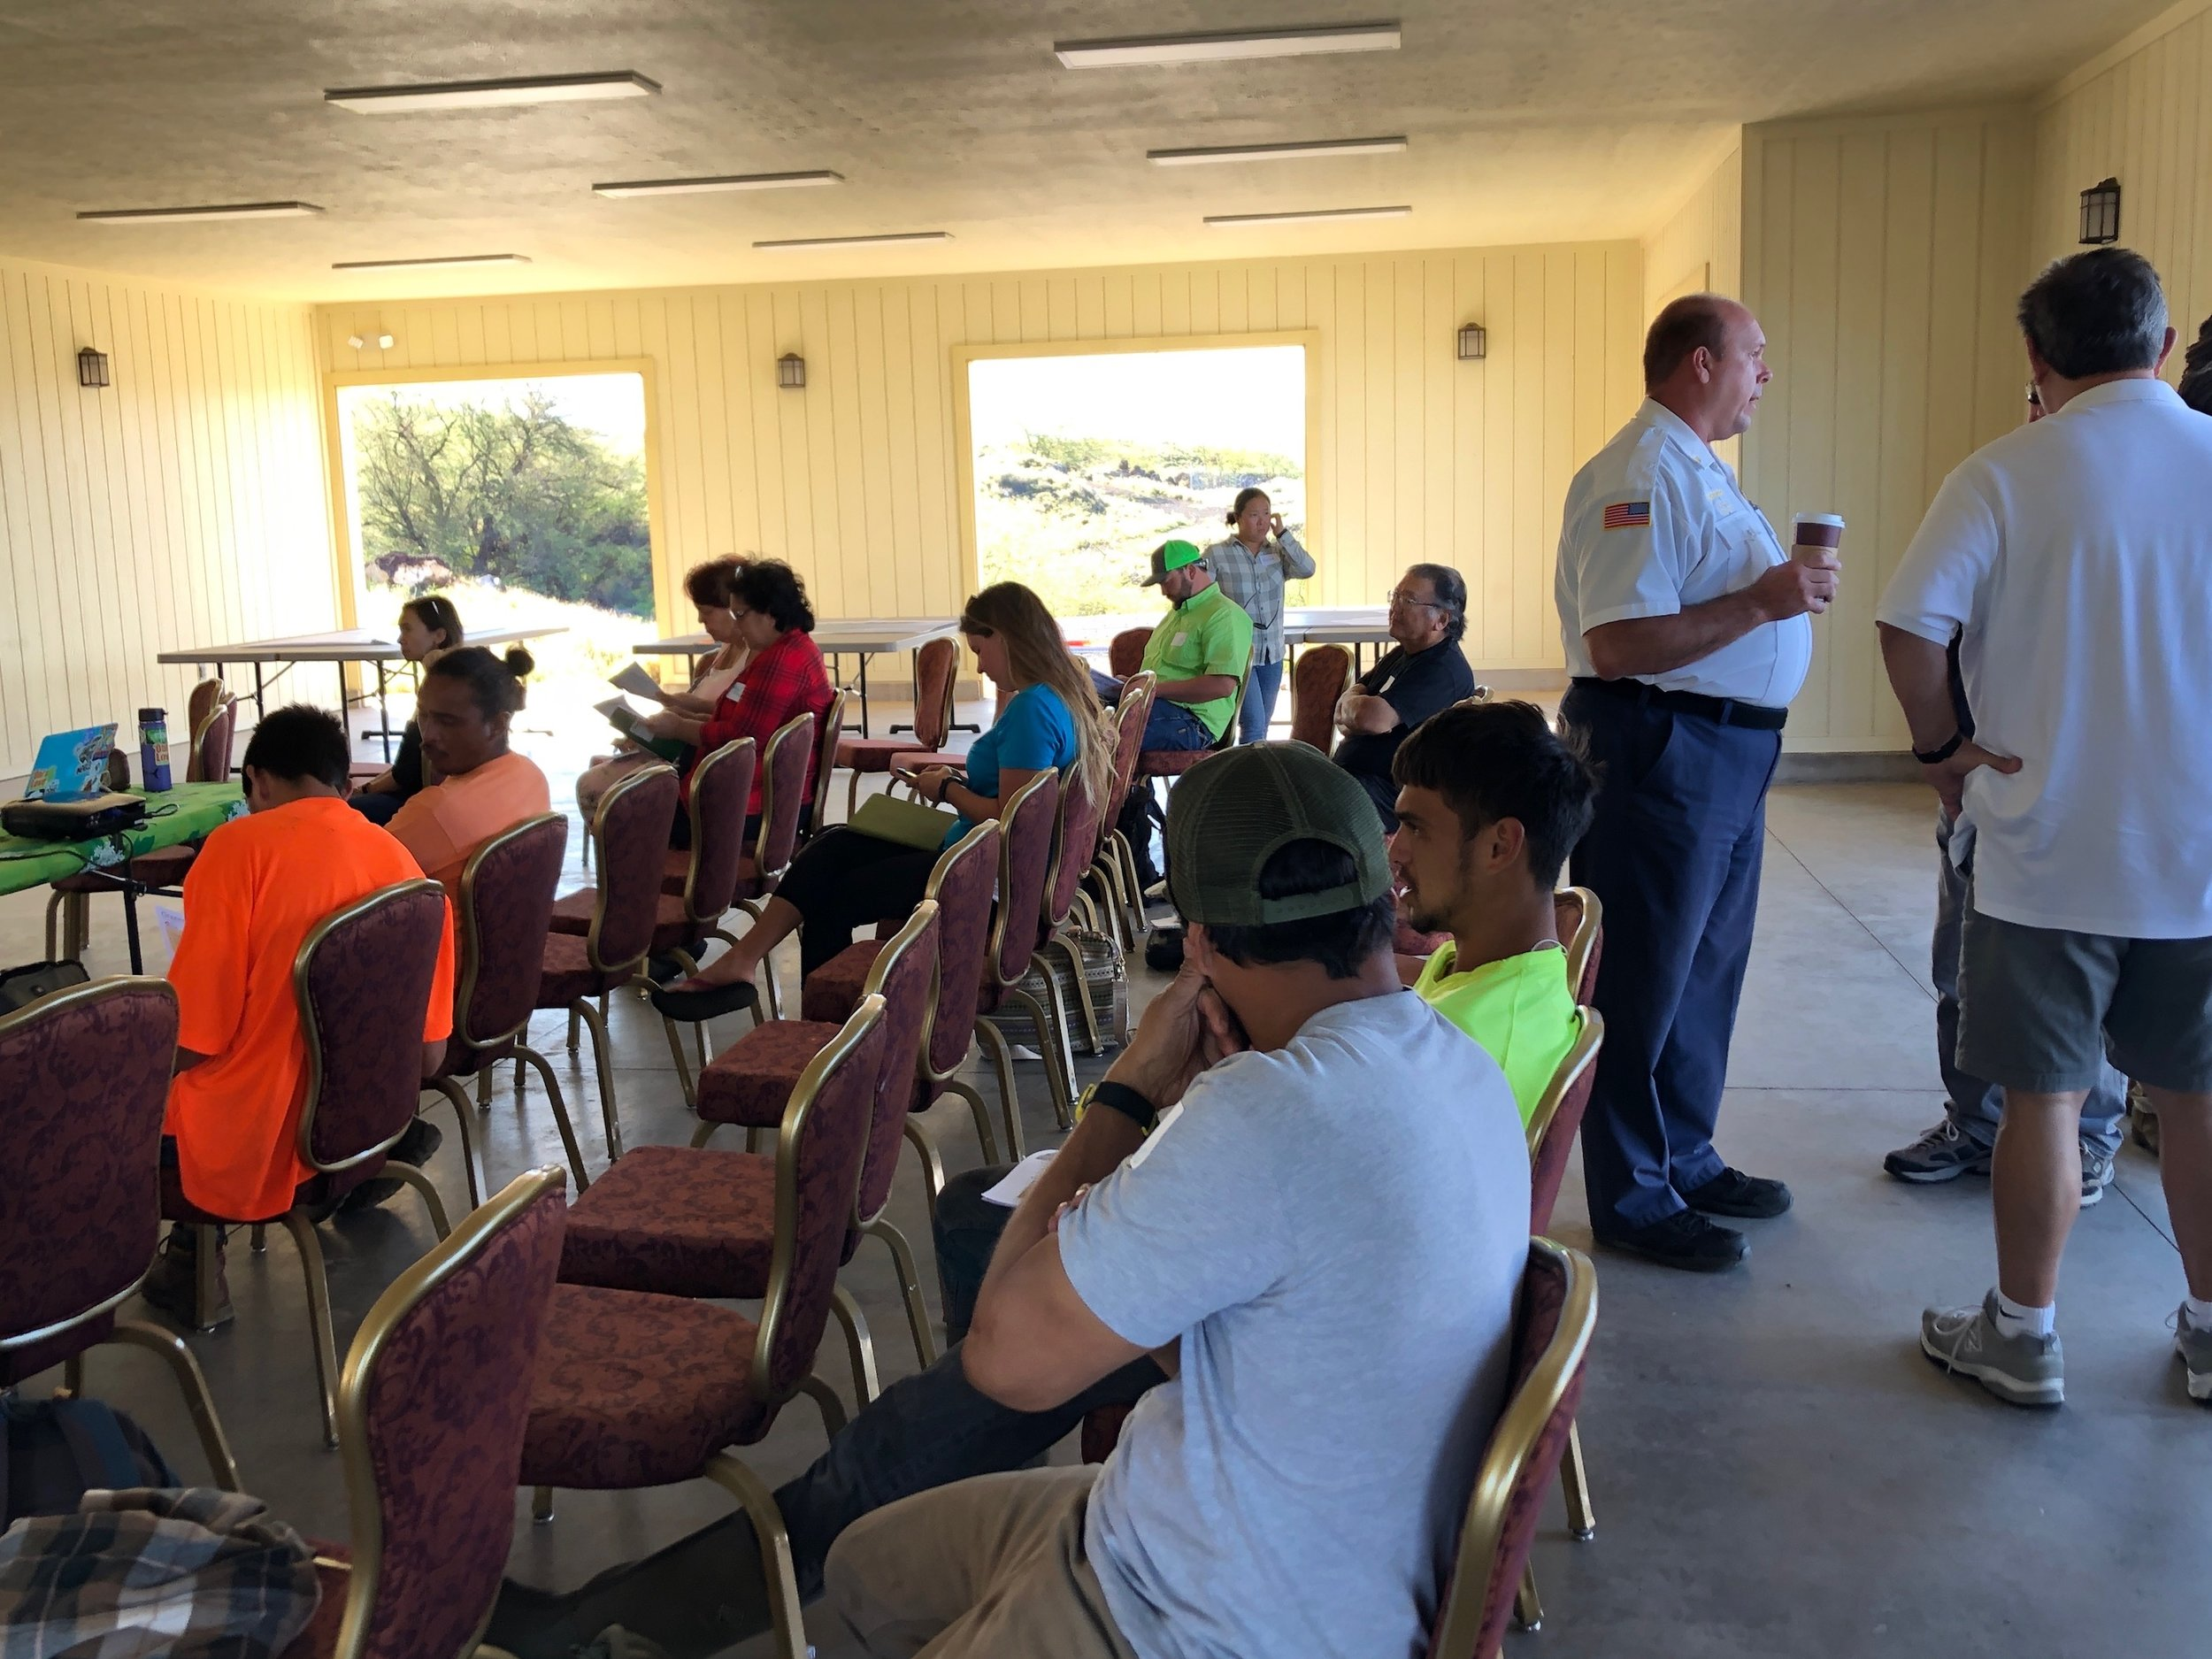 Hawaii Island Kailapa Vegetative Fuels Management Collaborative Action Planning Workshop_2_26_2019_8.jpg